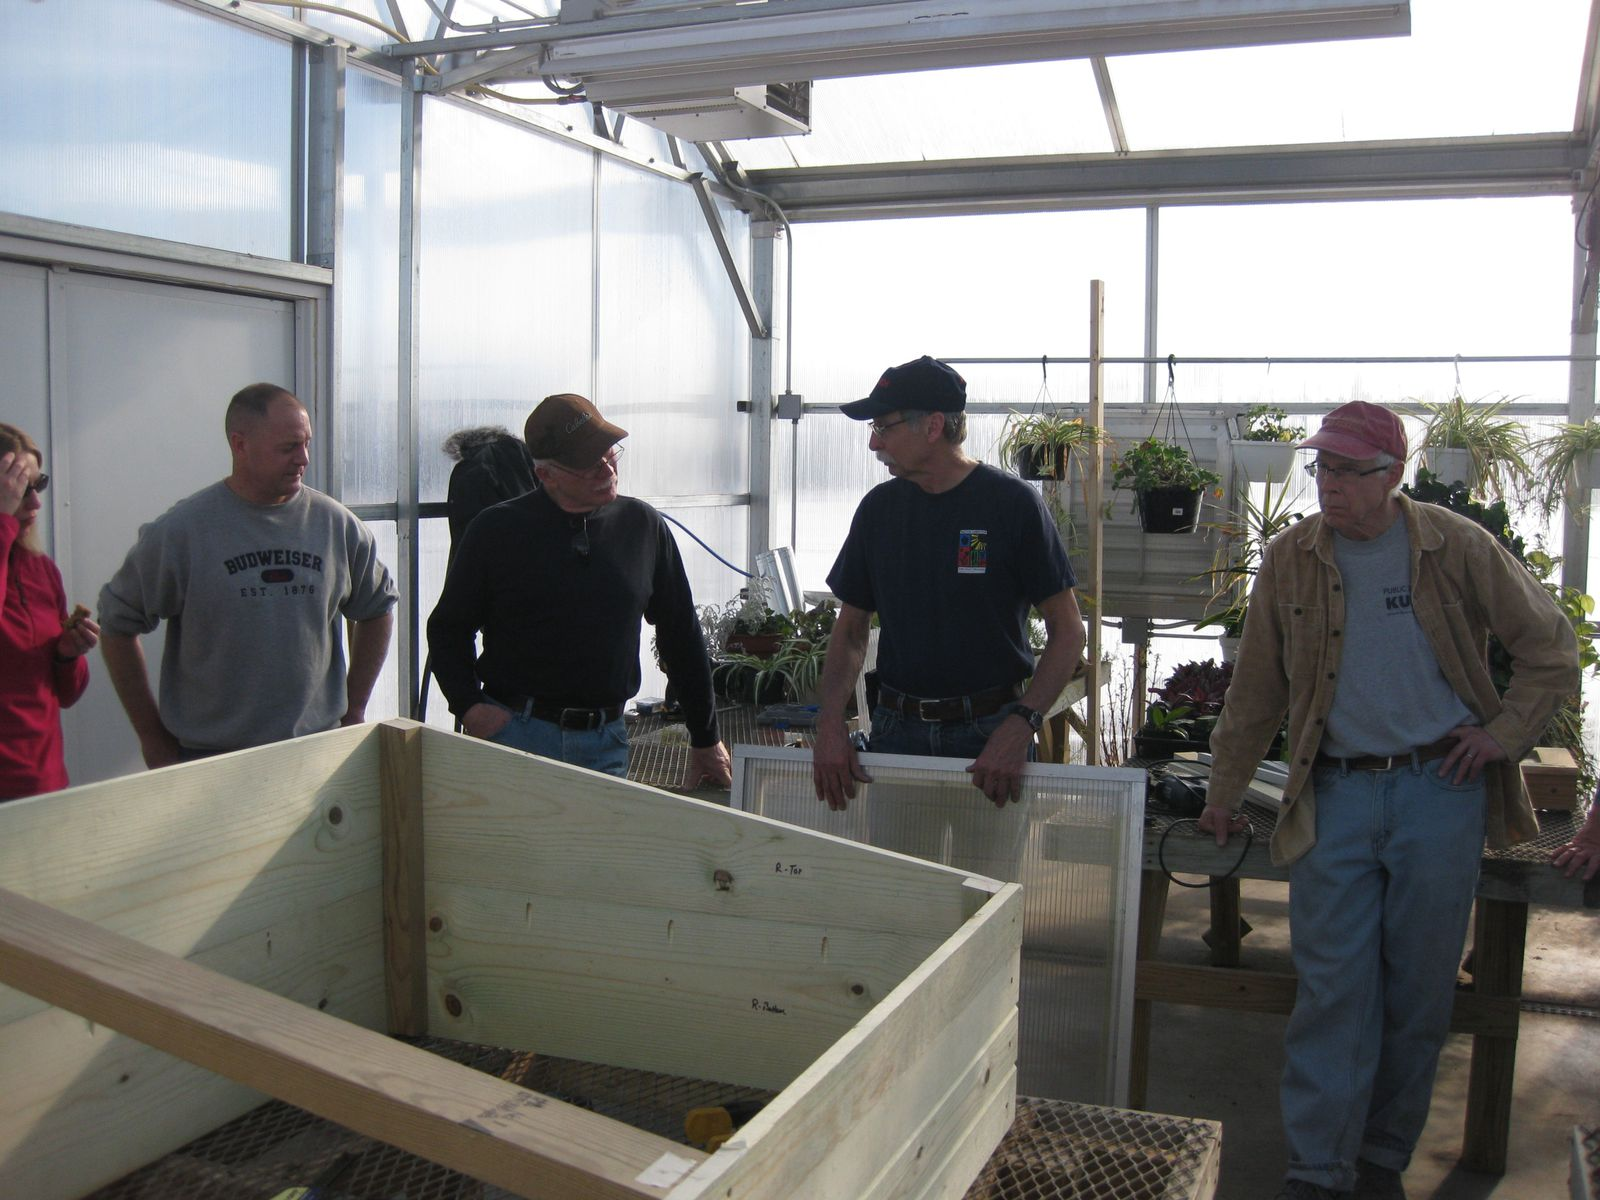 Assembling the cold frame.